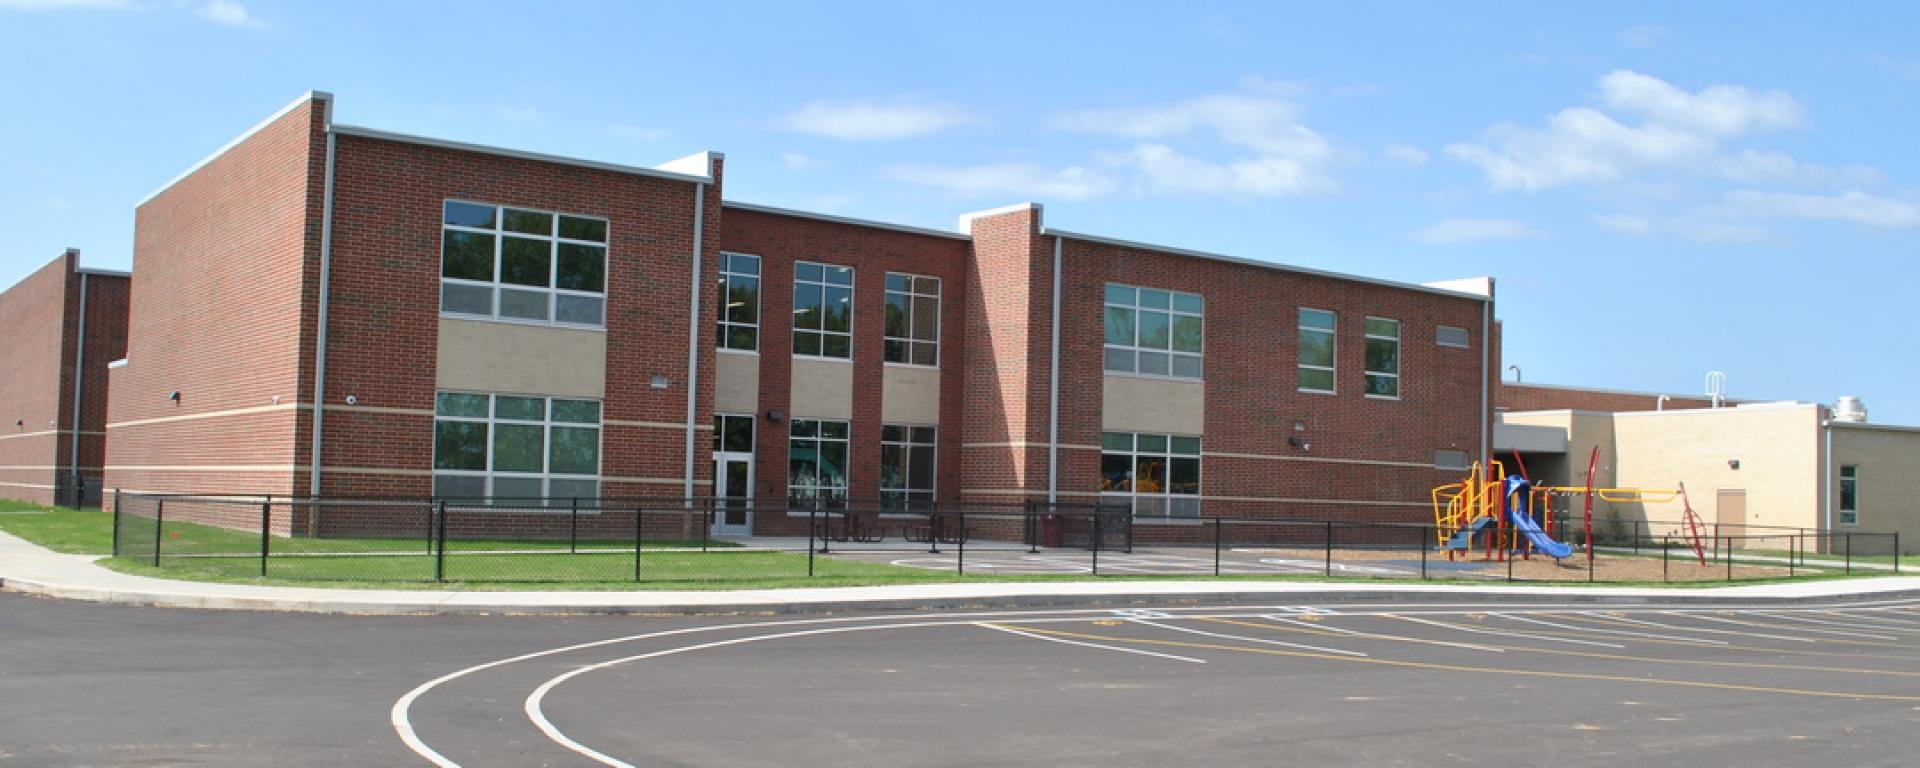 Front view of Fairfield Central Elementary School